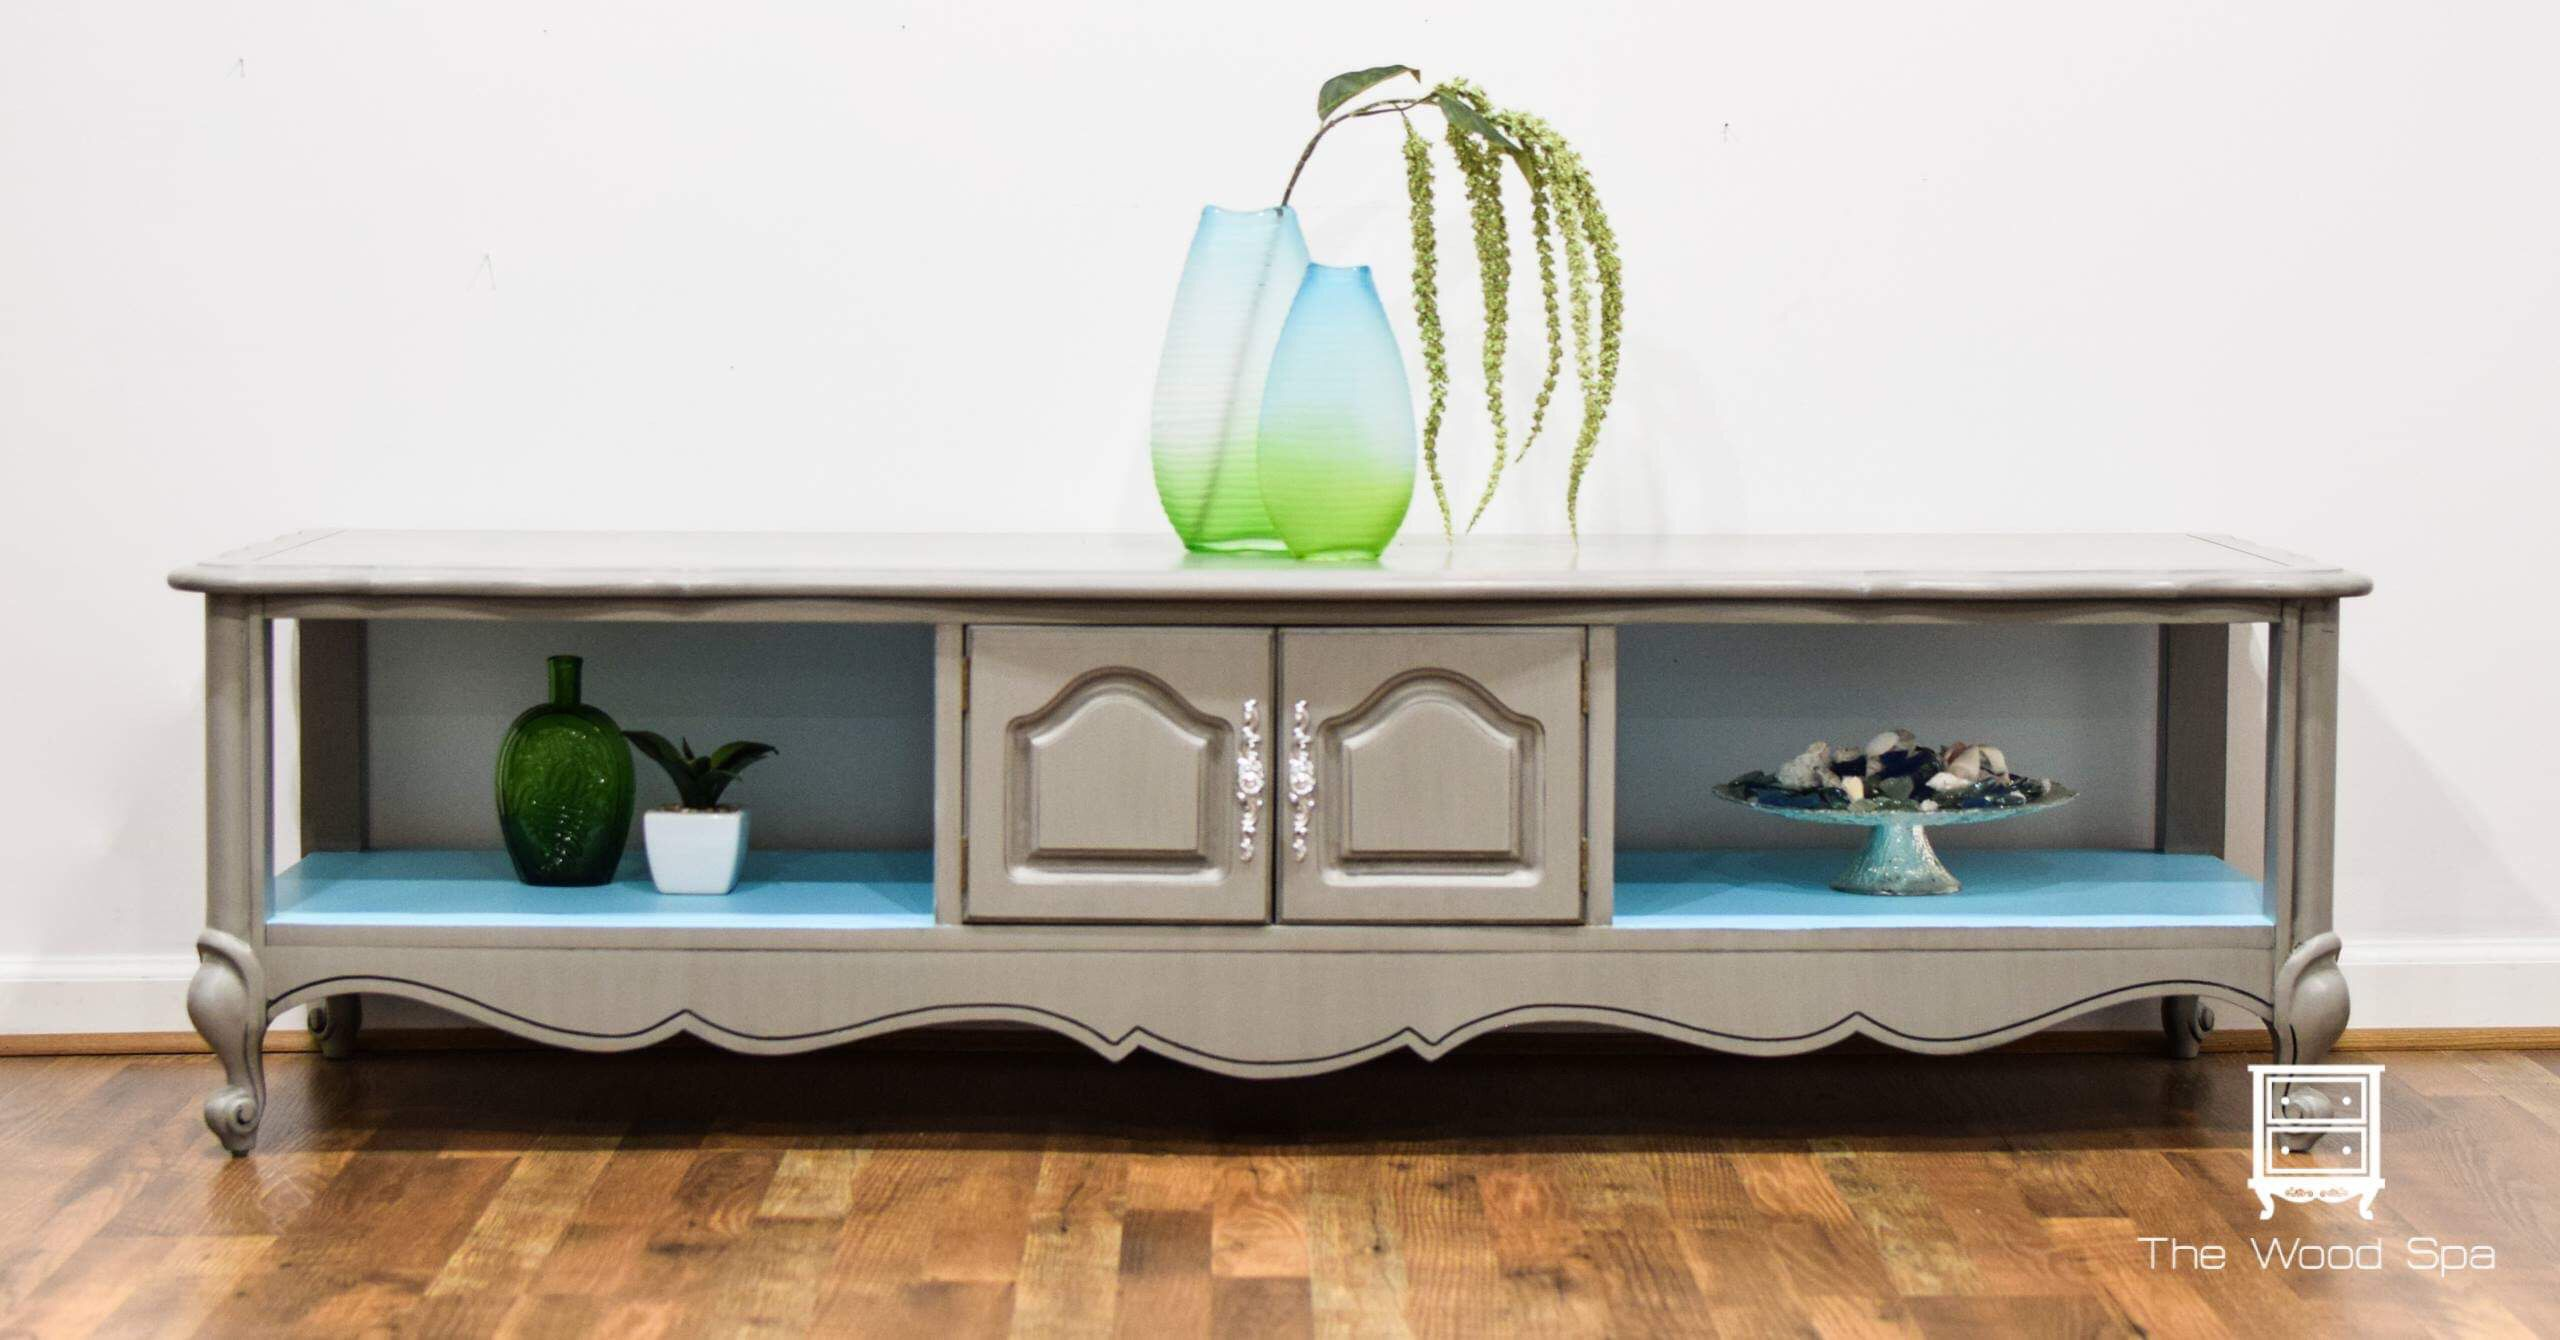 French Provincial Coffee Table painted with Valspar Tabby